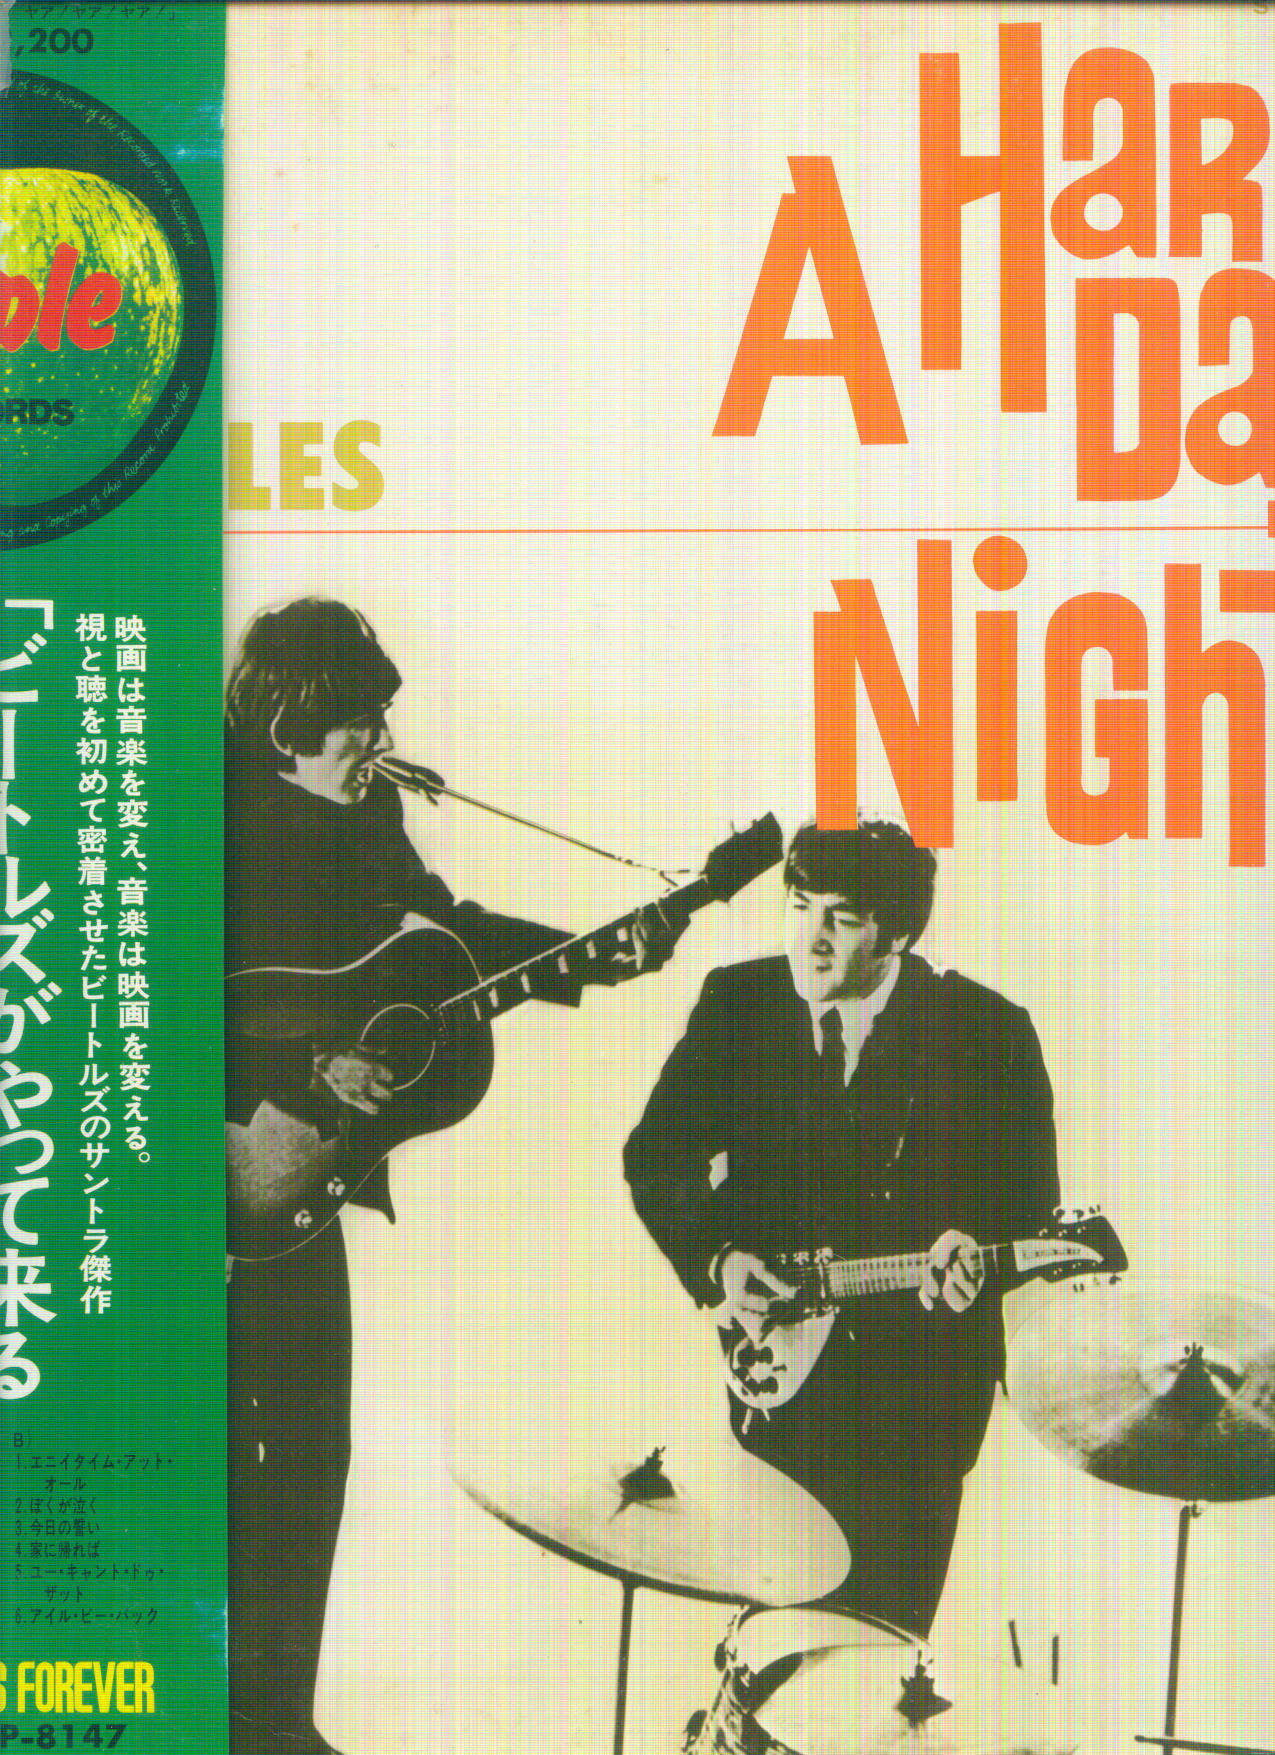 THE BEATLES A HARD DAY'S NIGHT (JAPANESE SECOND PRESSING - STEREO)